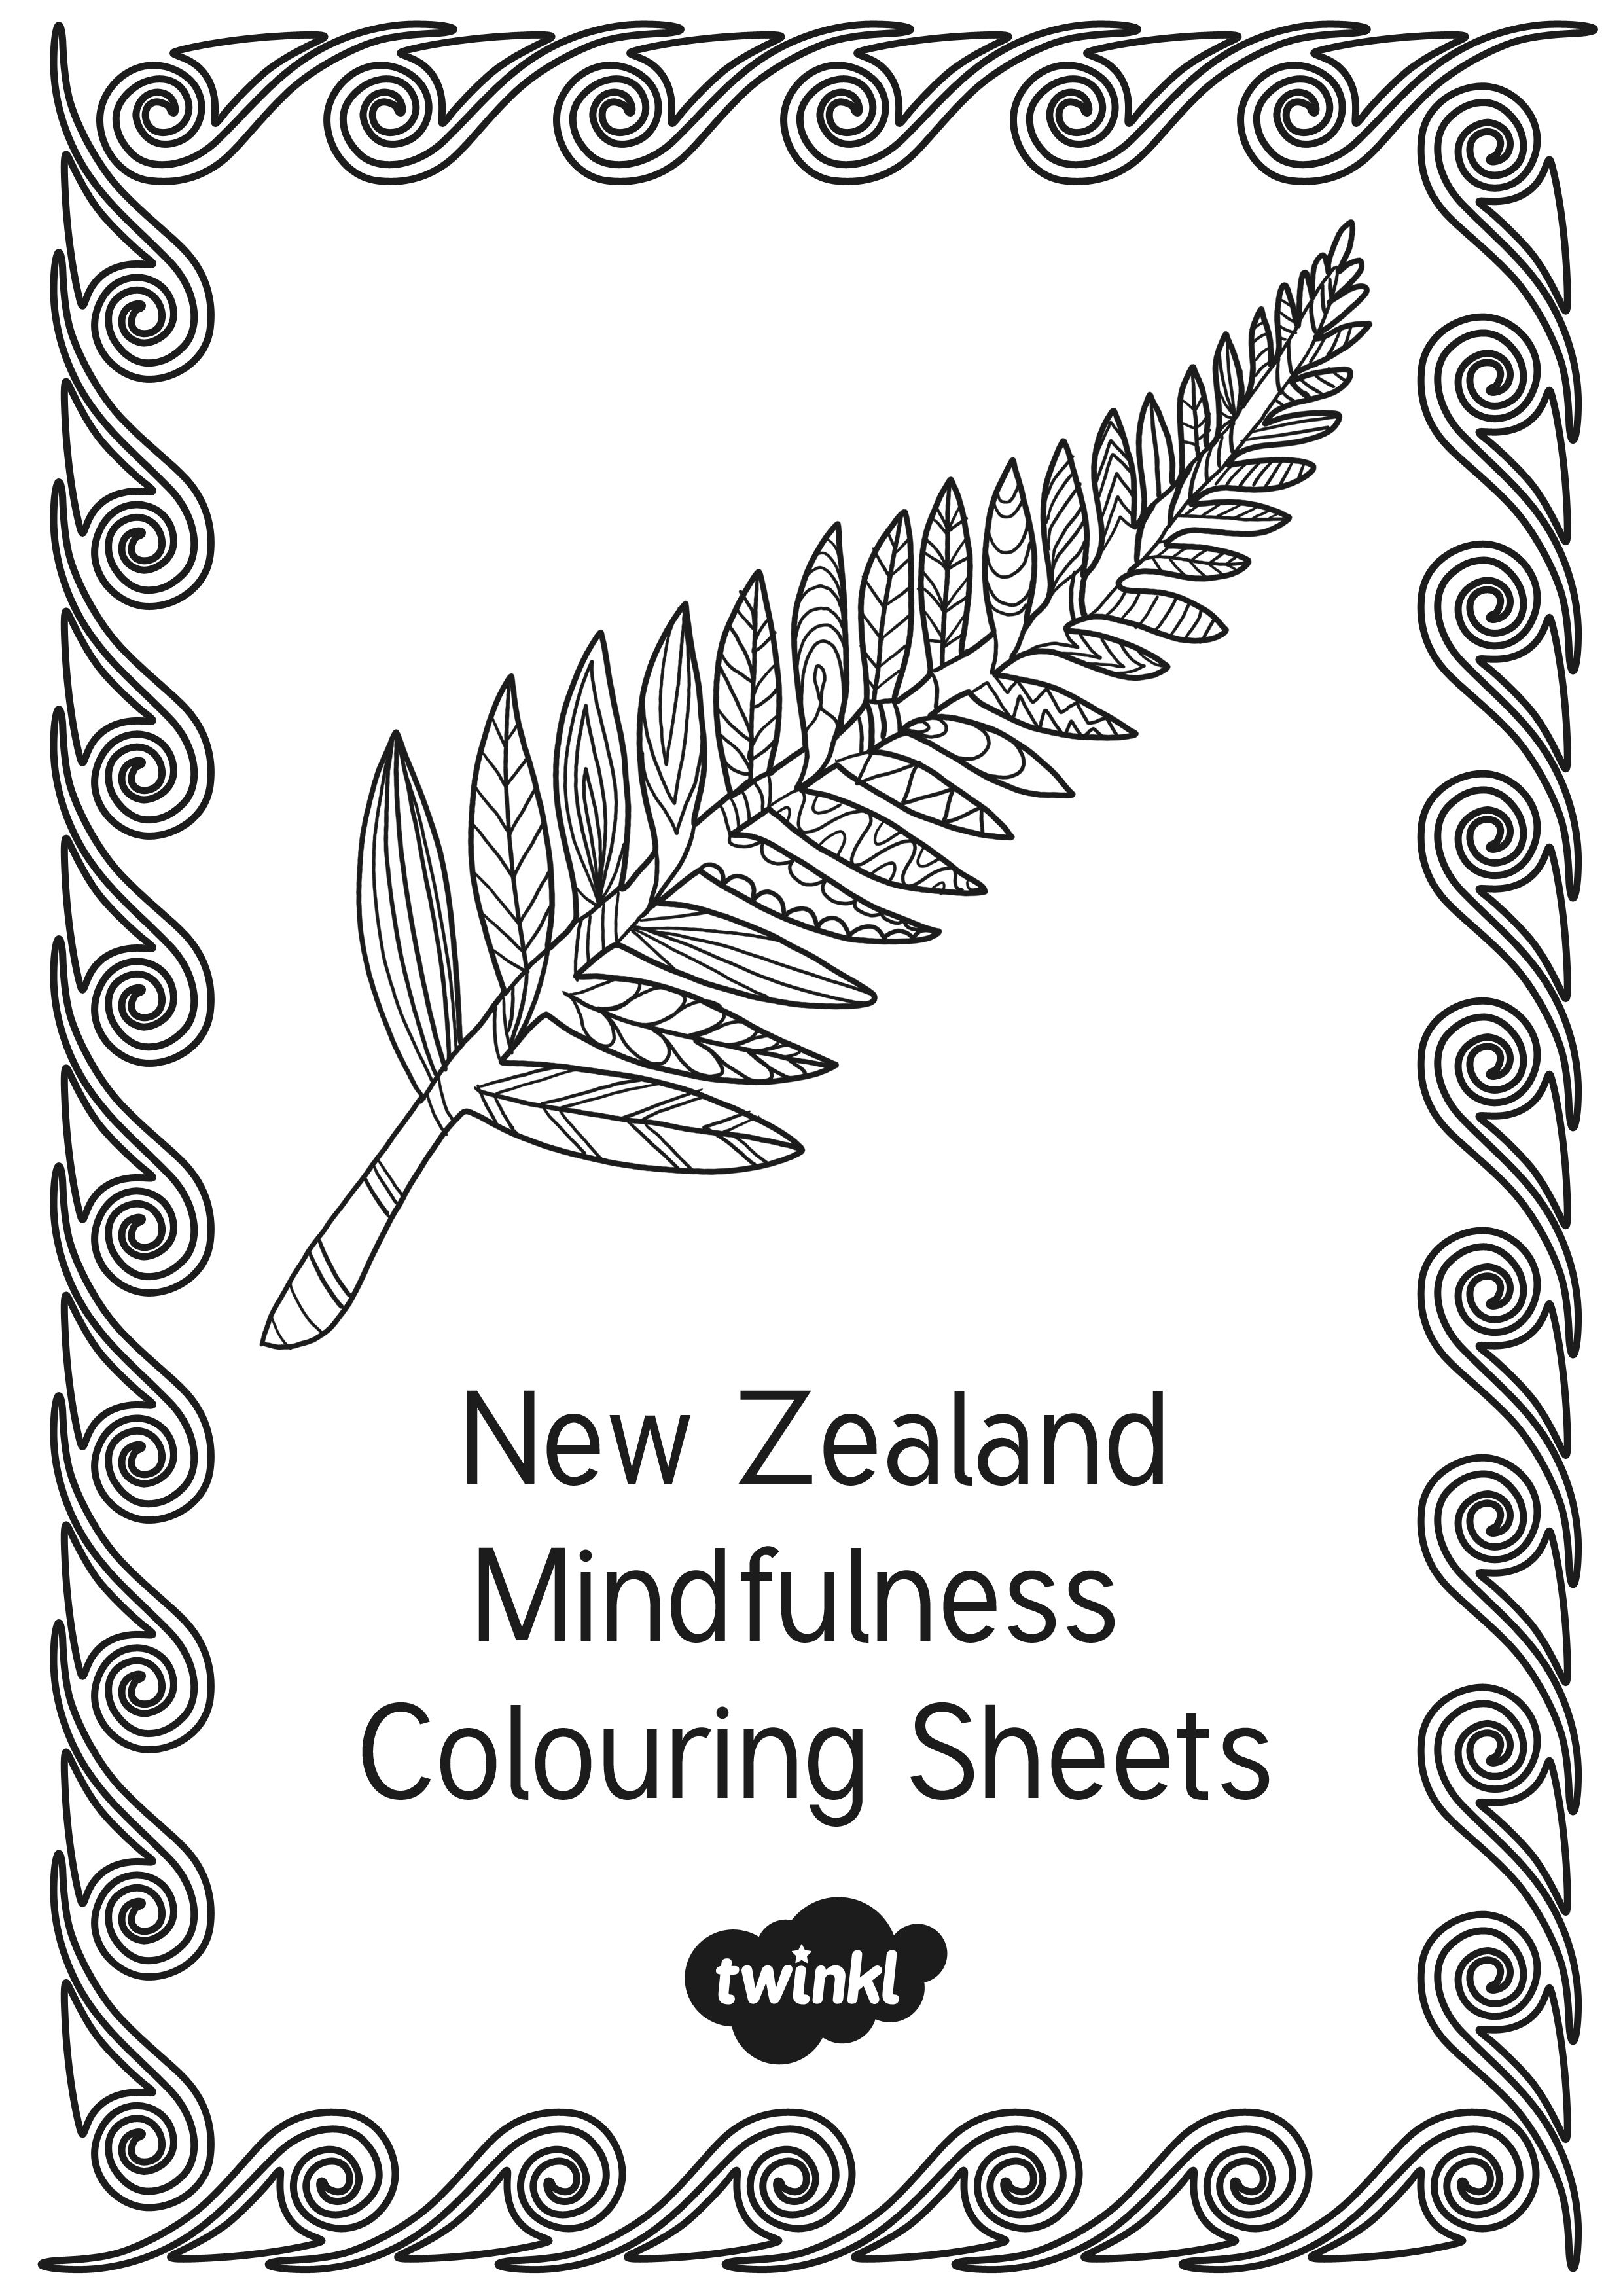 Colouring in sheets twinkl - New Zealand Themed Mindfulness Or Adult Colouring Sheets From Twinkl Co Uk